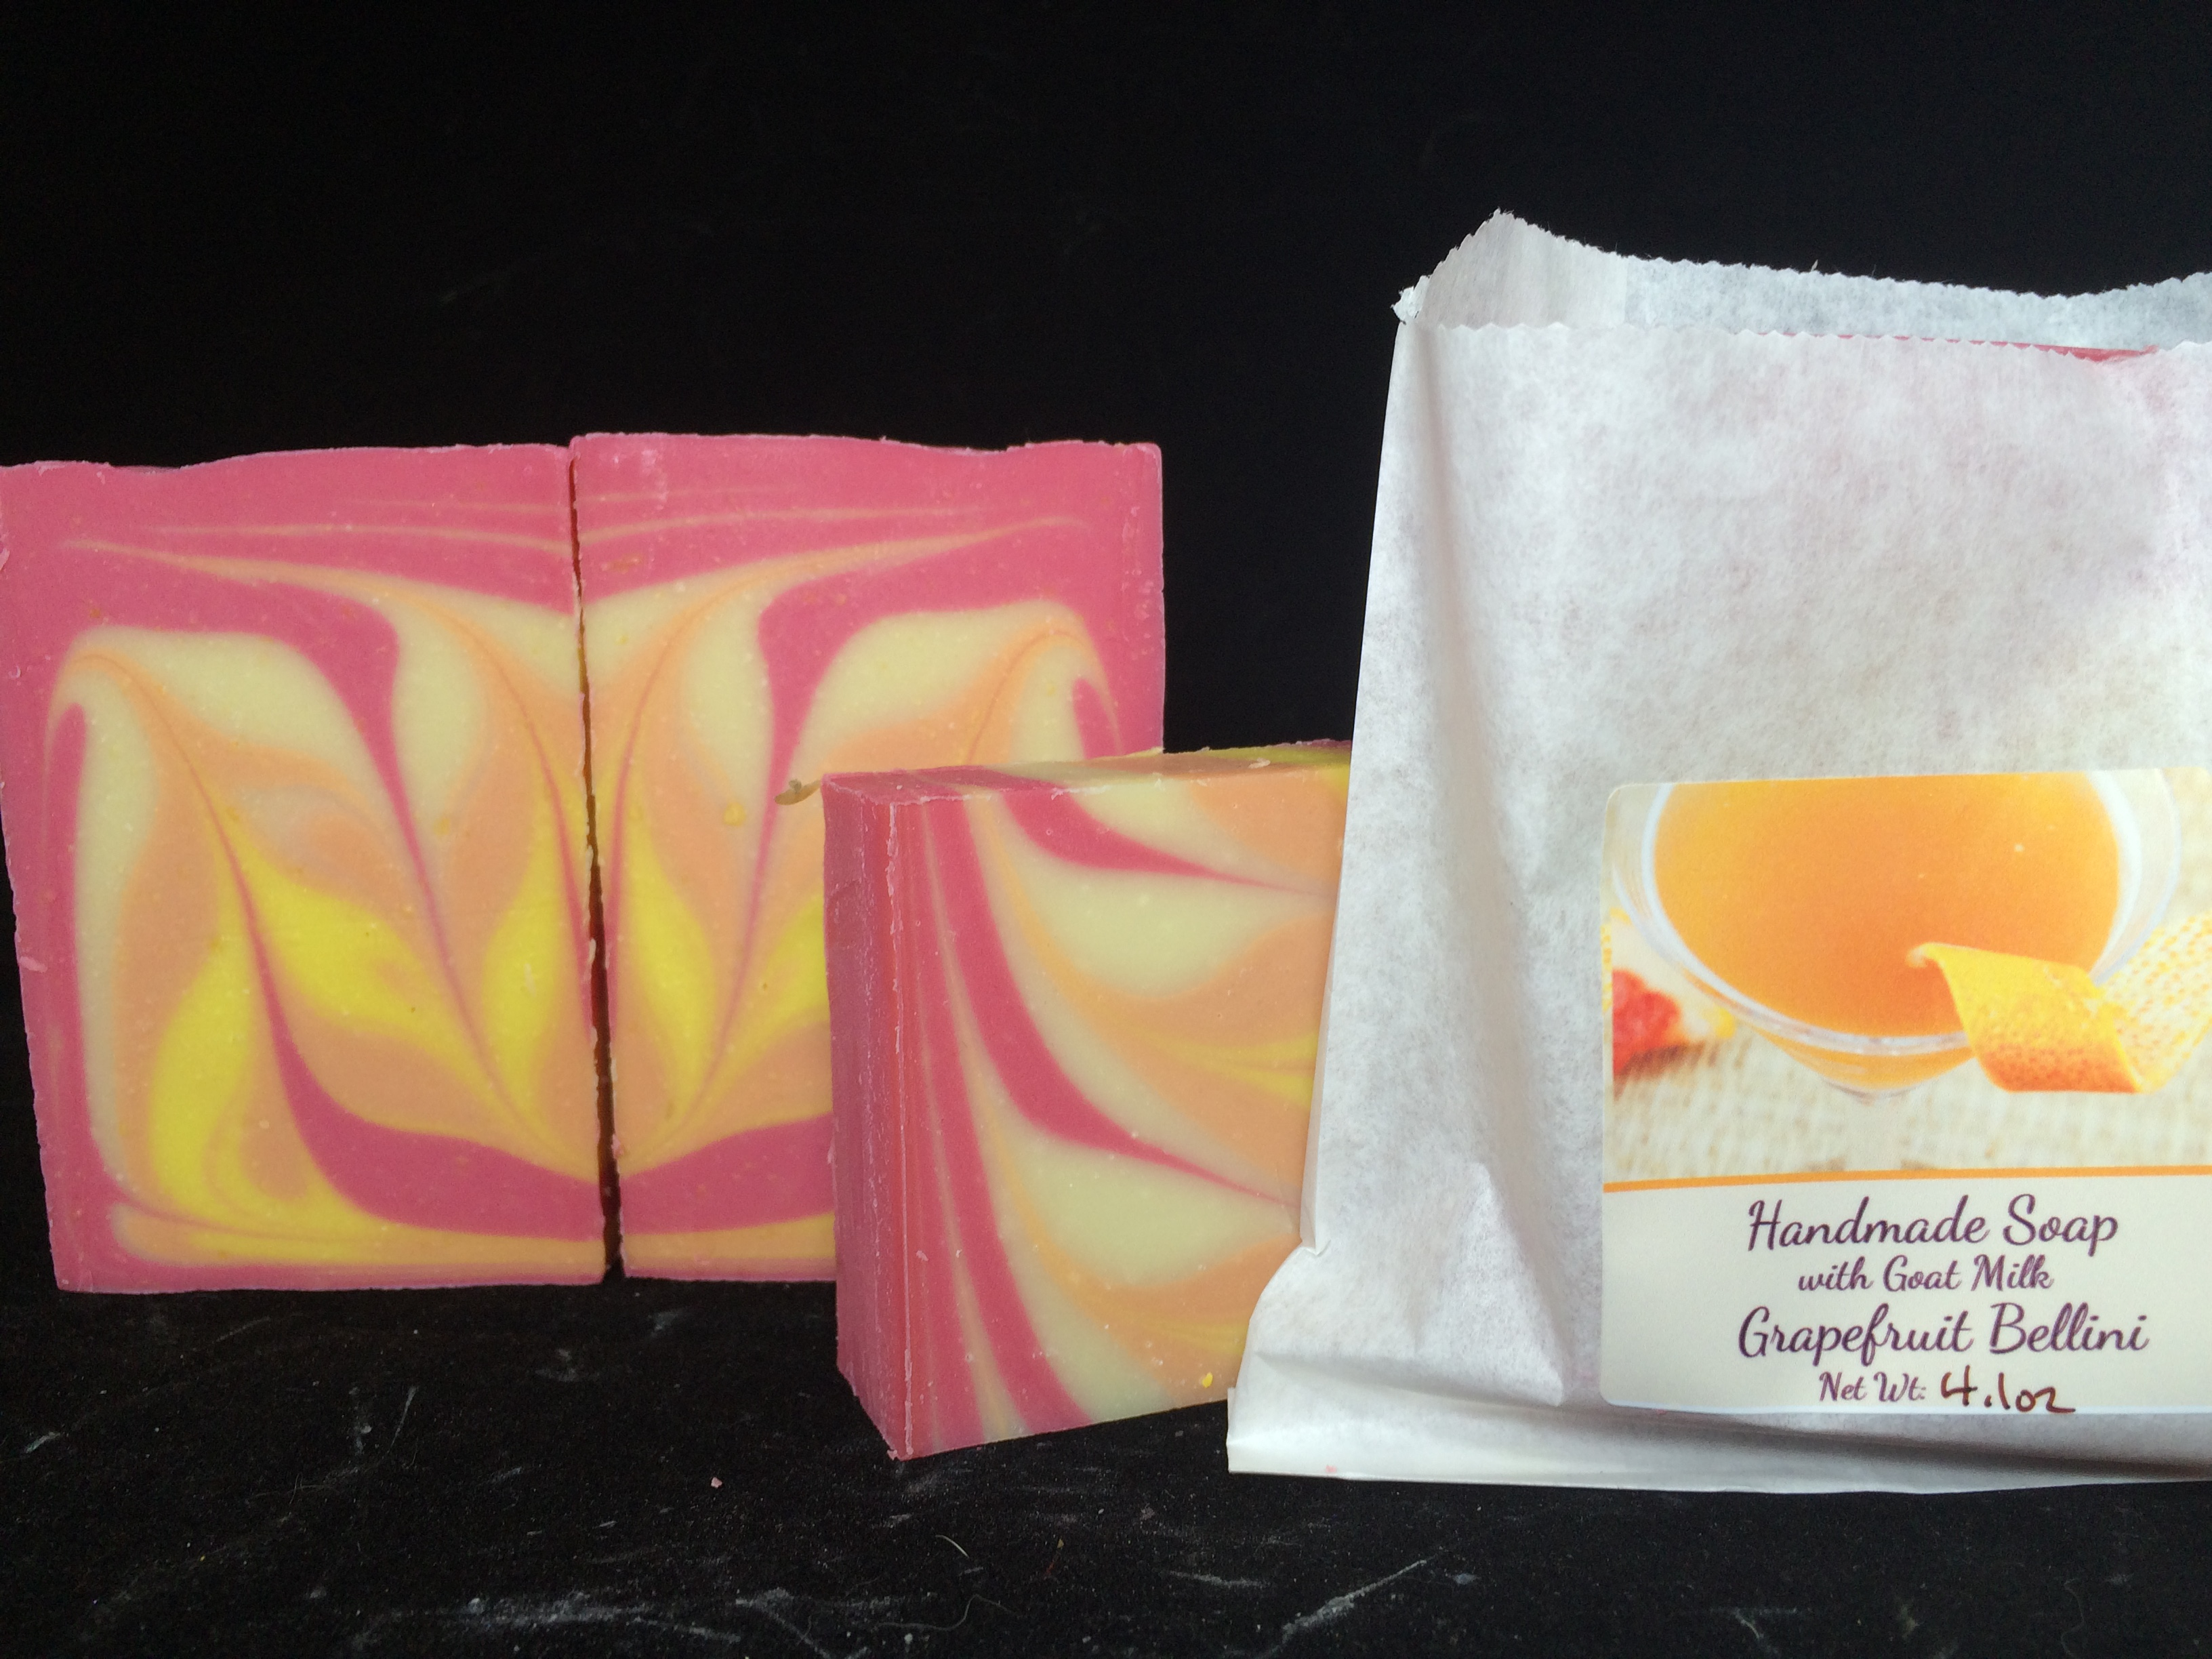 grapefruit bellini soap with goat milk